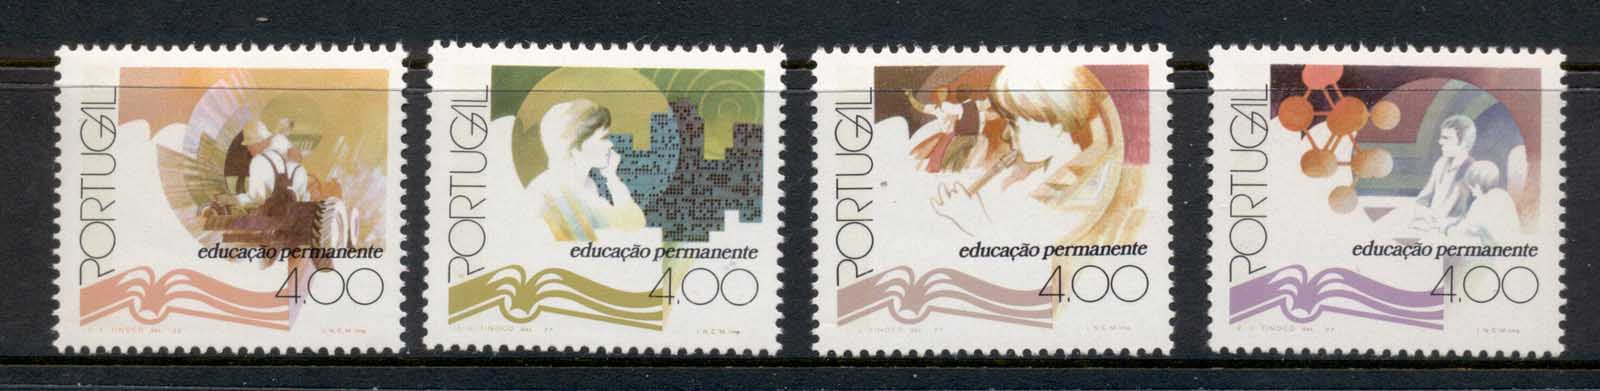 Portugal 1977 Continual Education MLH